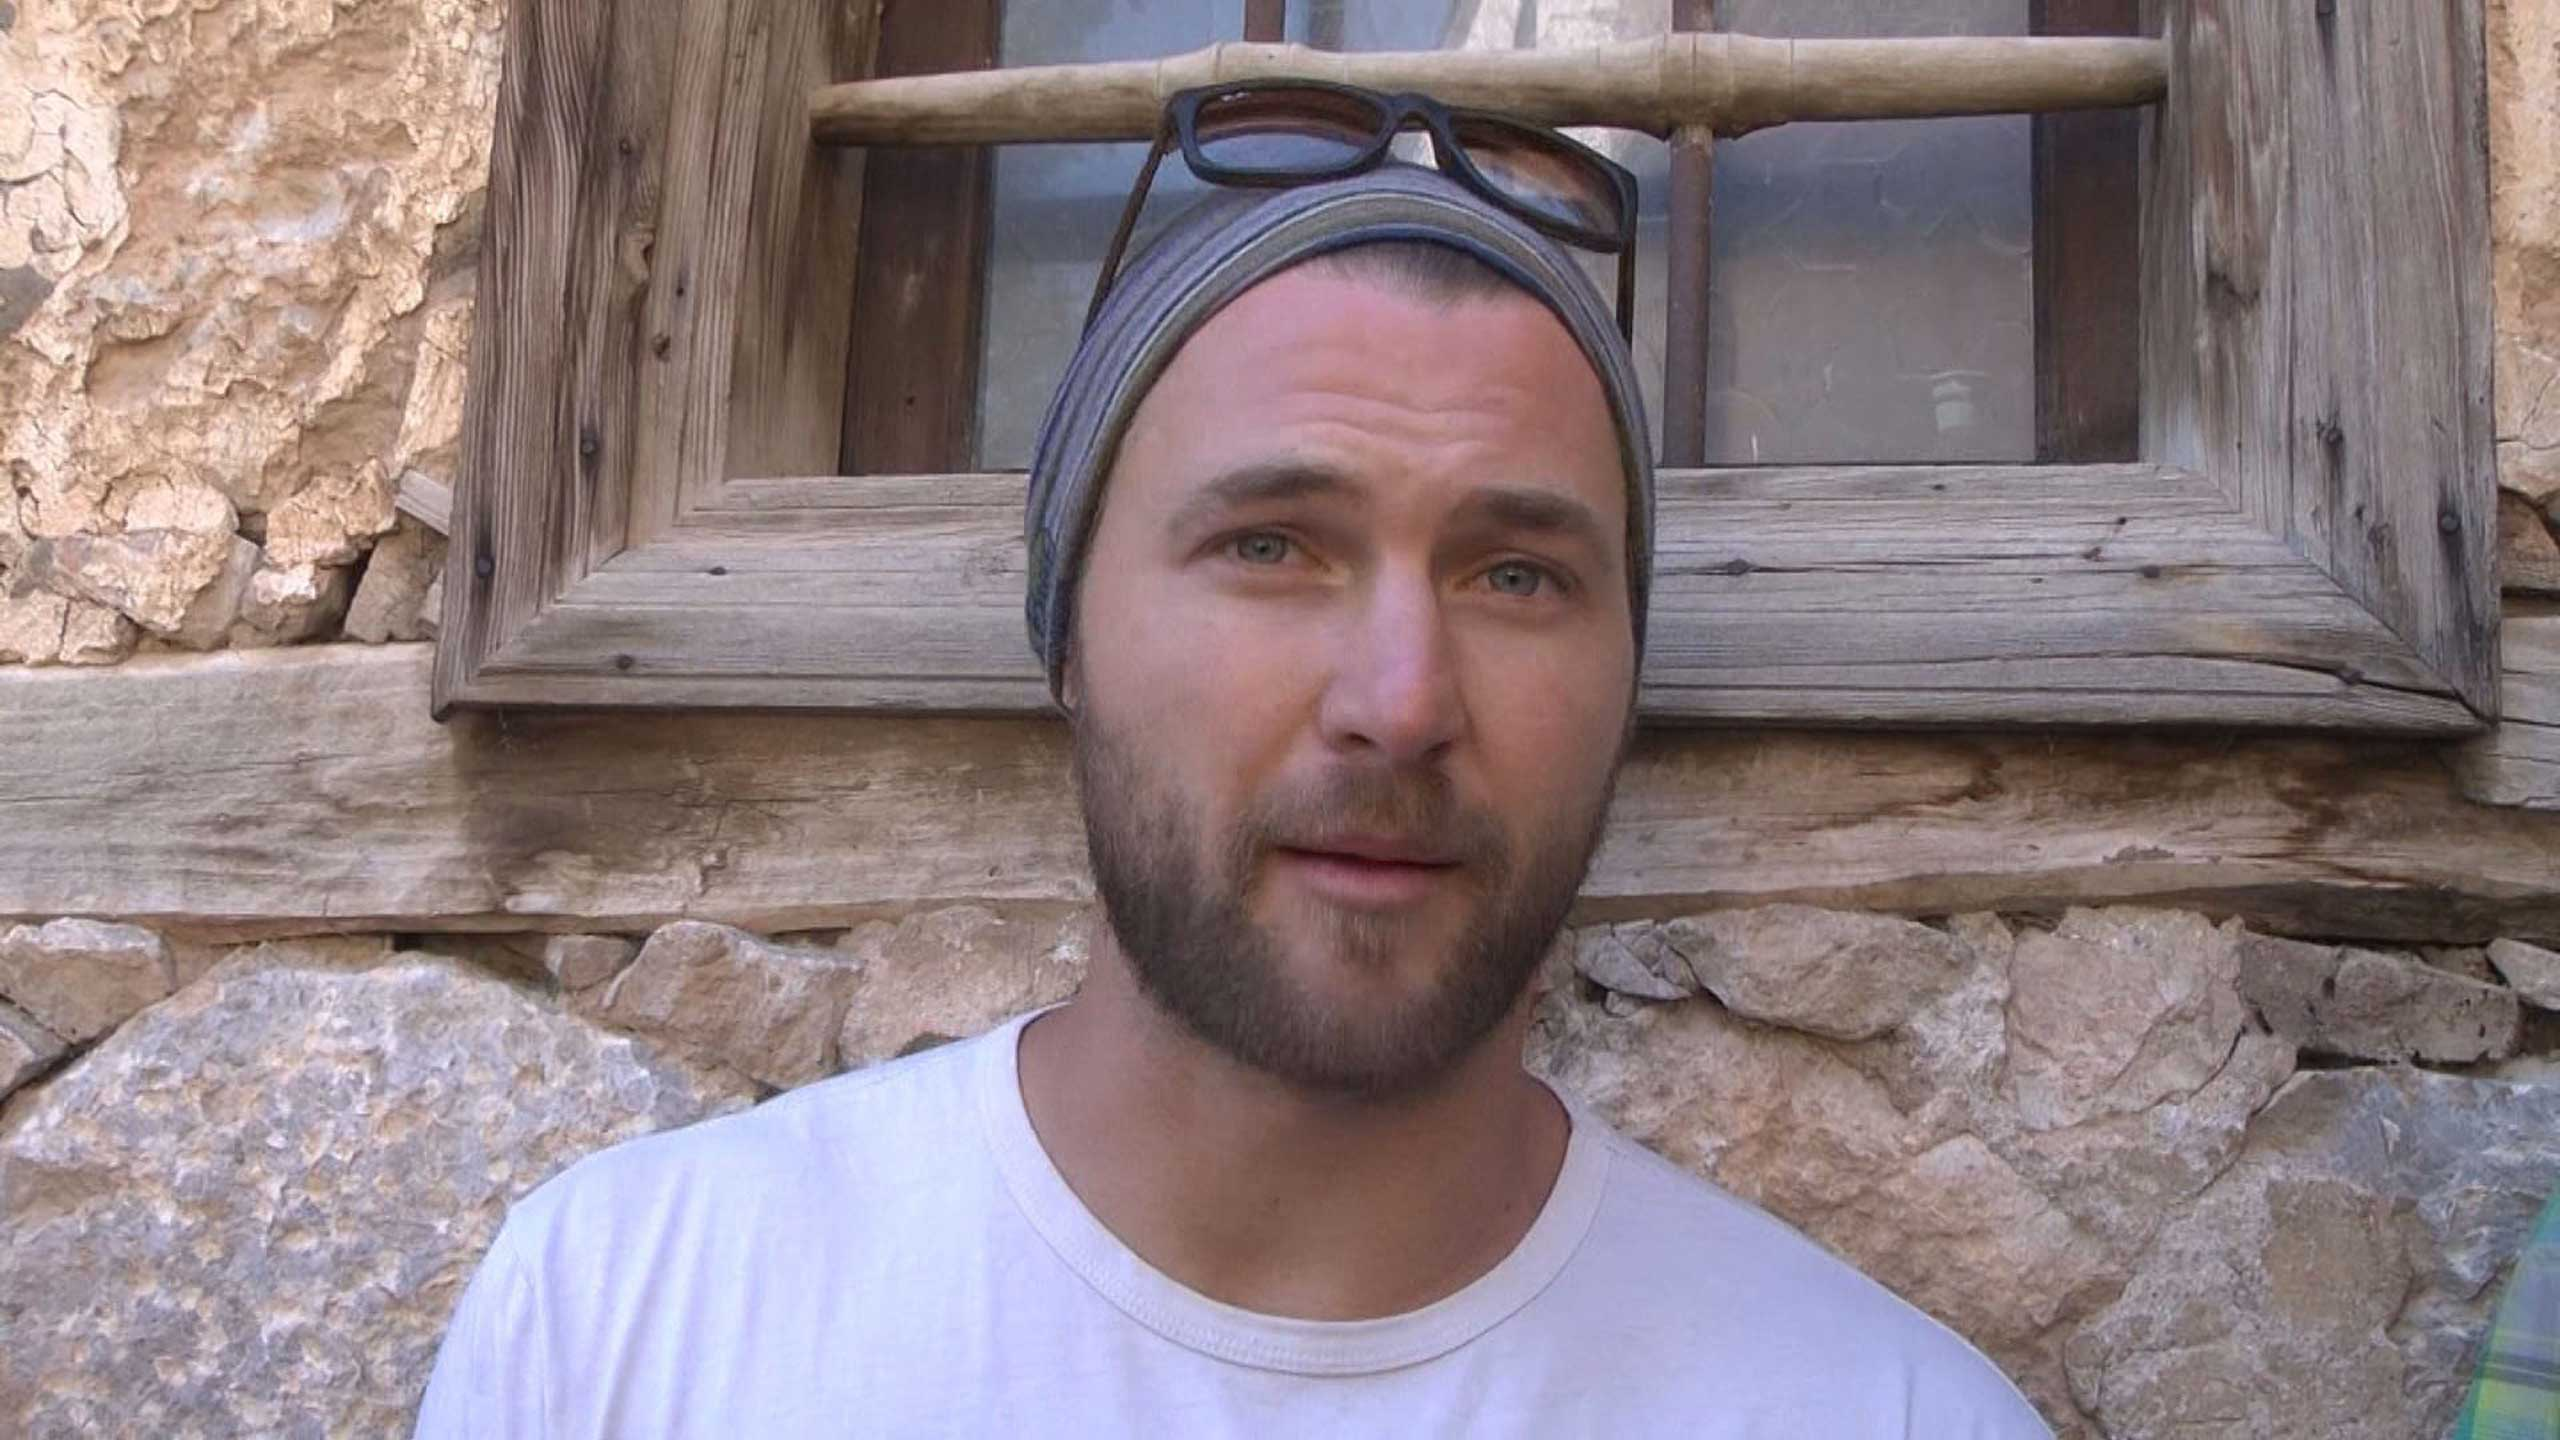 American base jumper Ian Flanders seen in Turkey before accident.